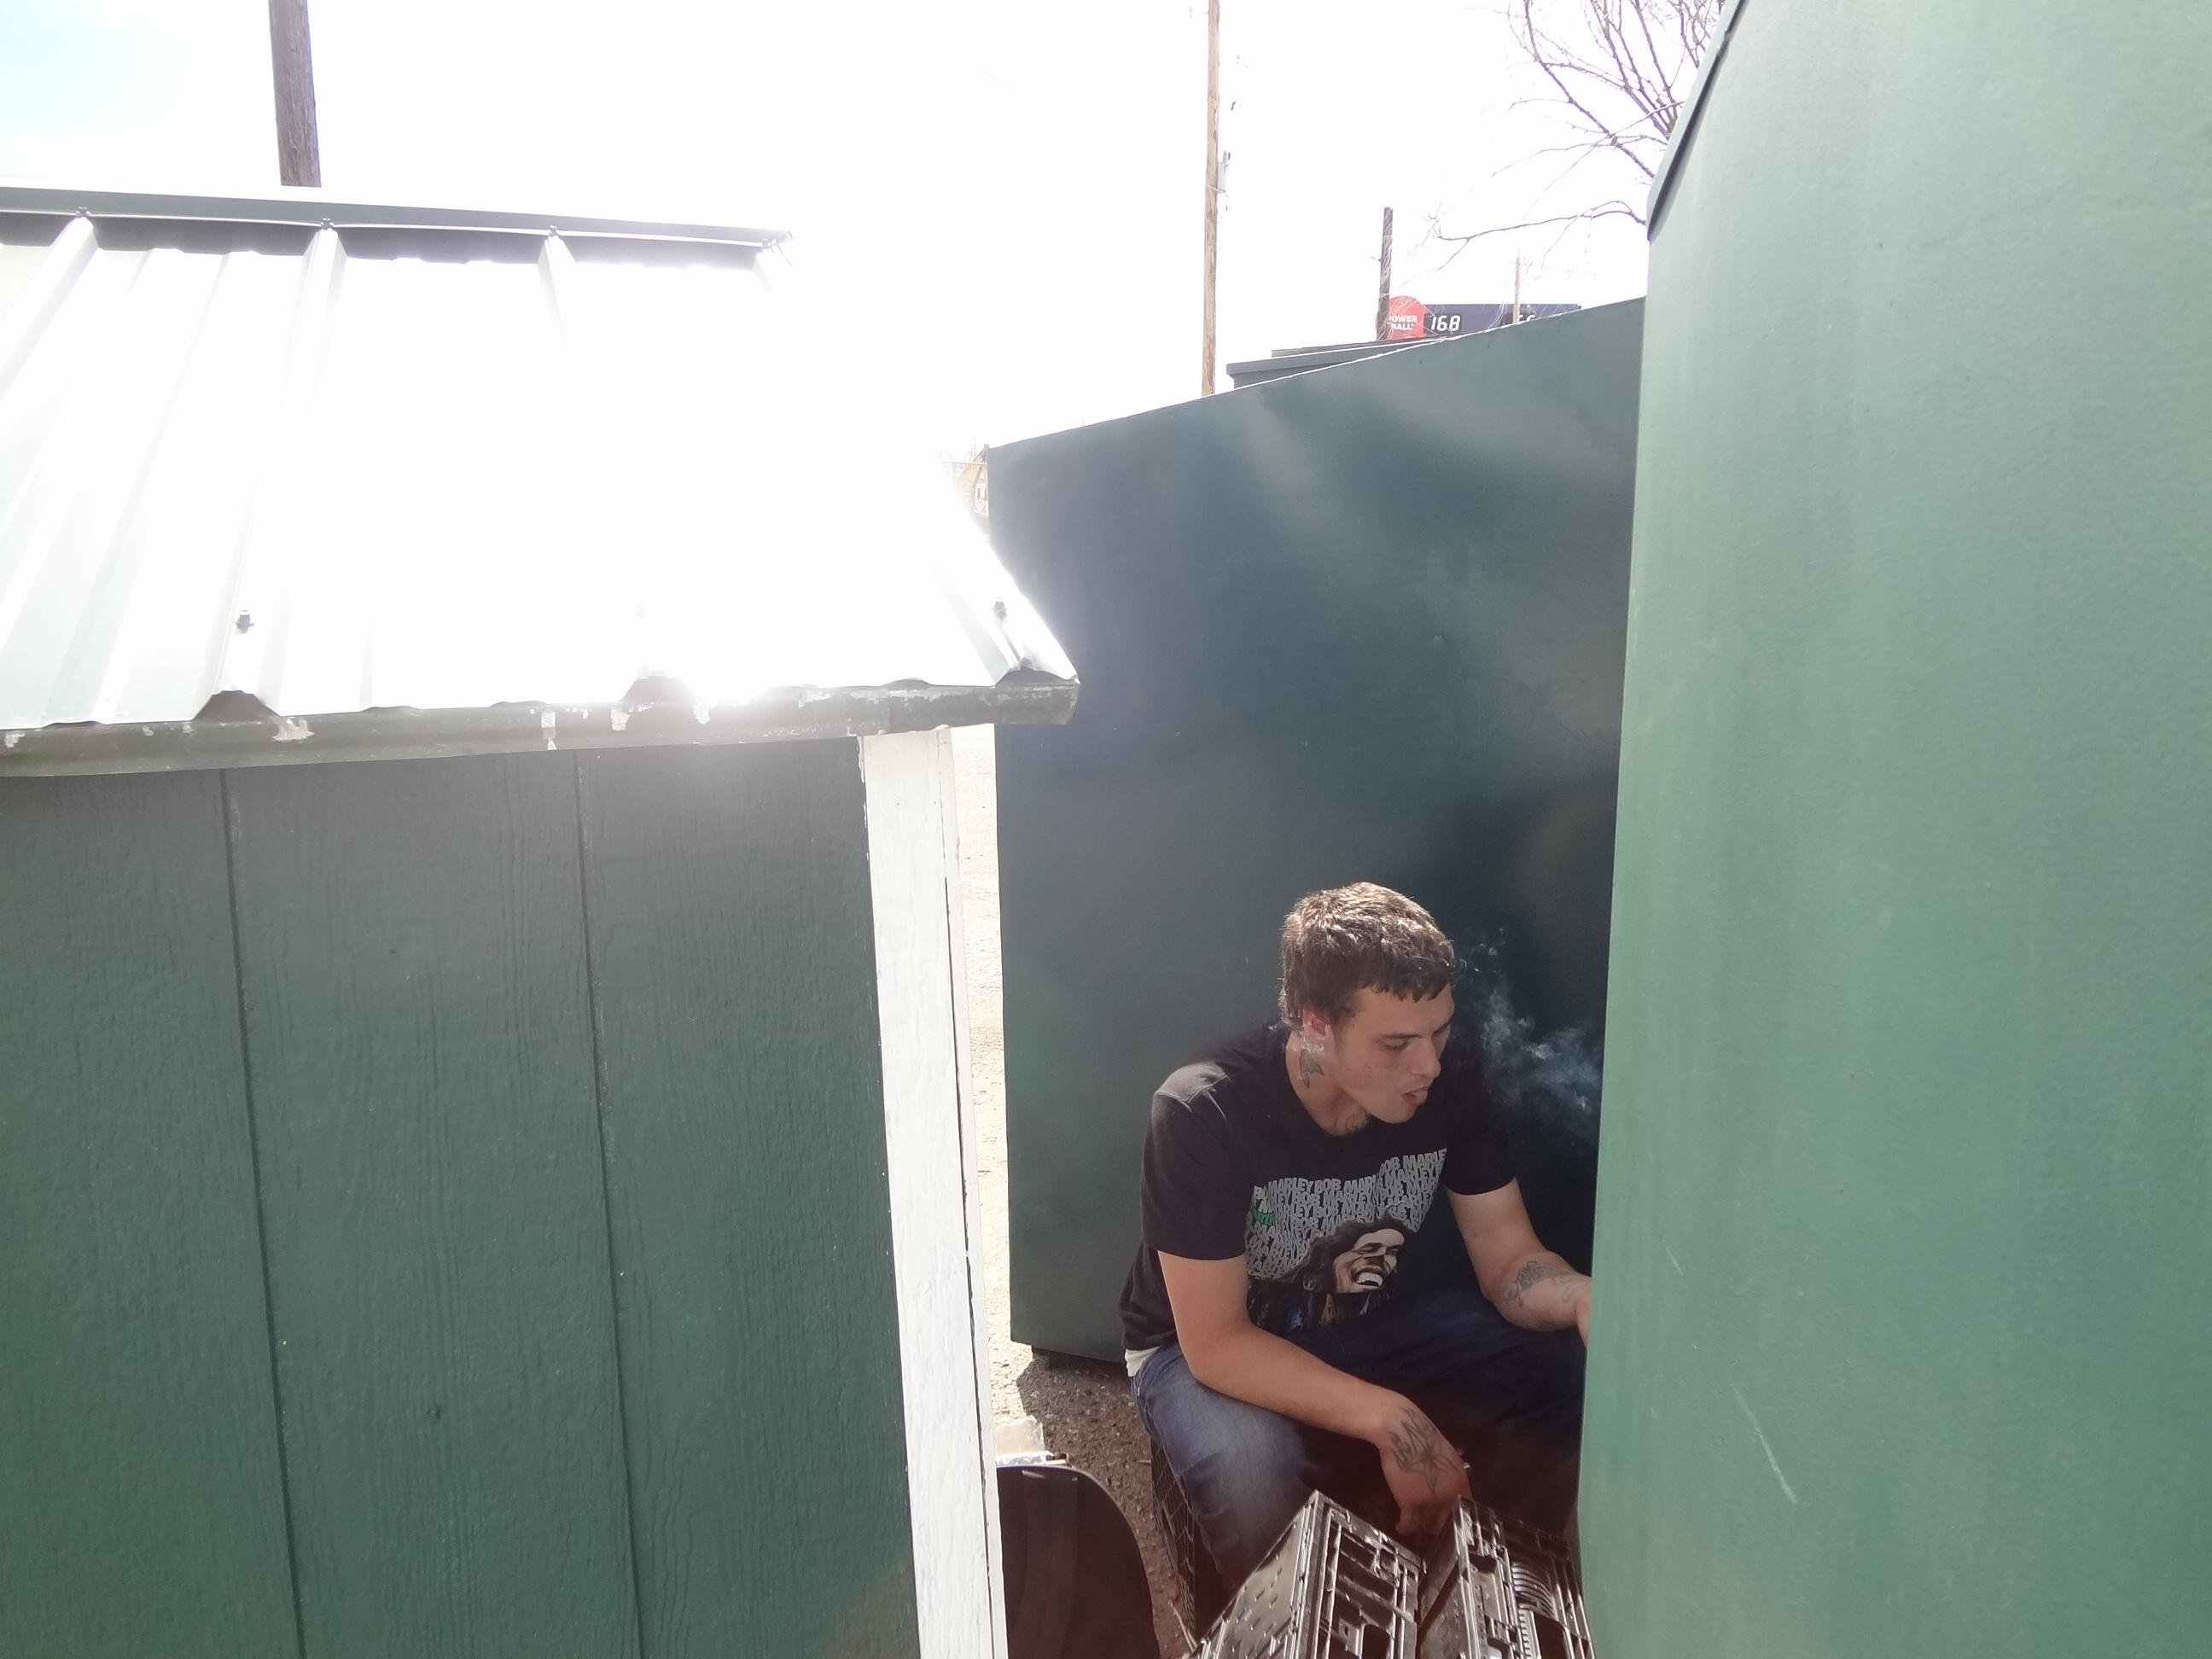 Devin Butts among the dumpsters